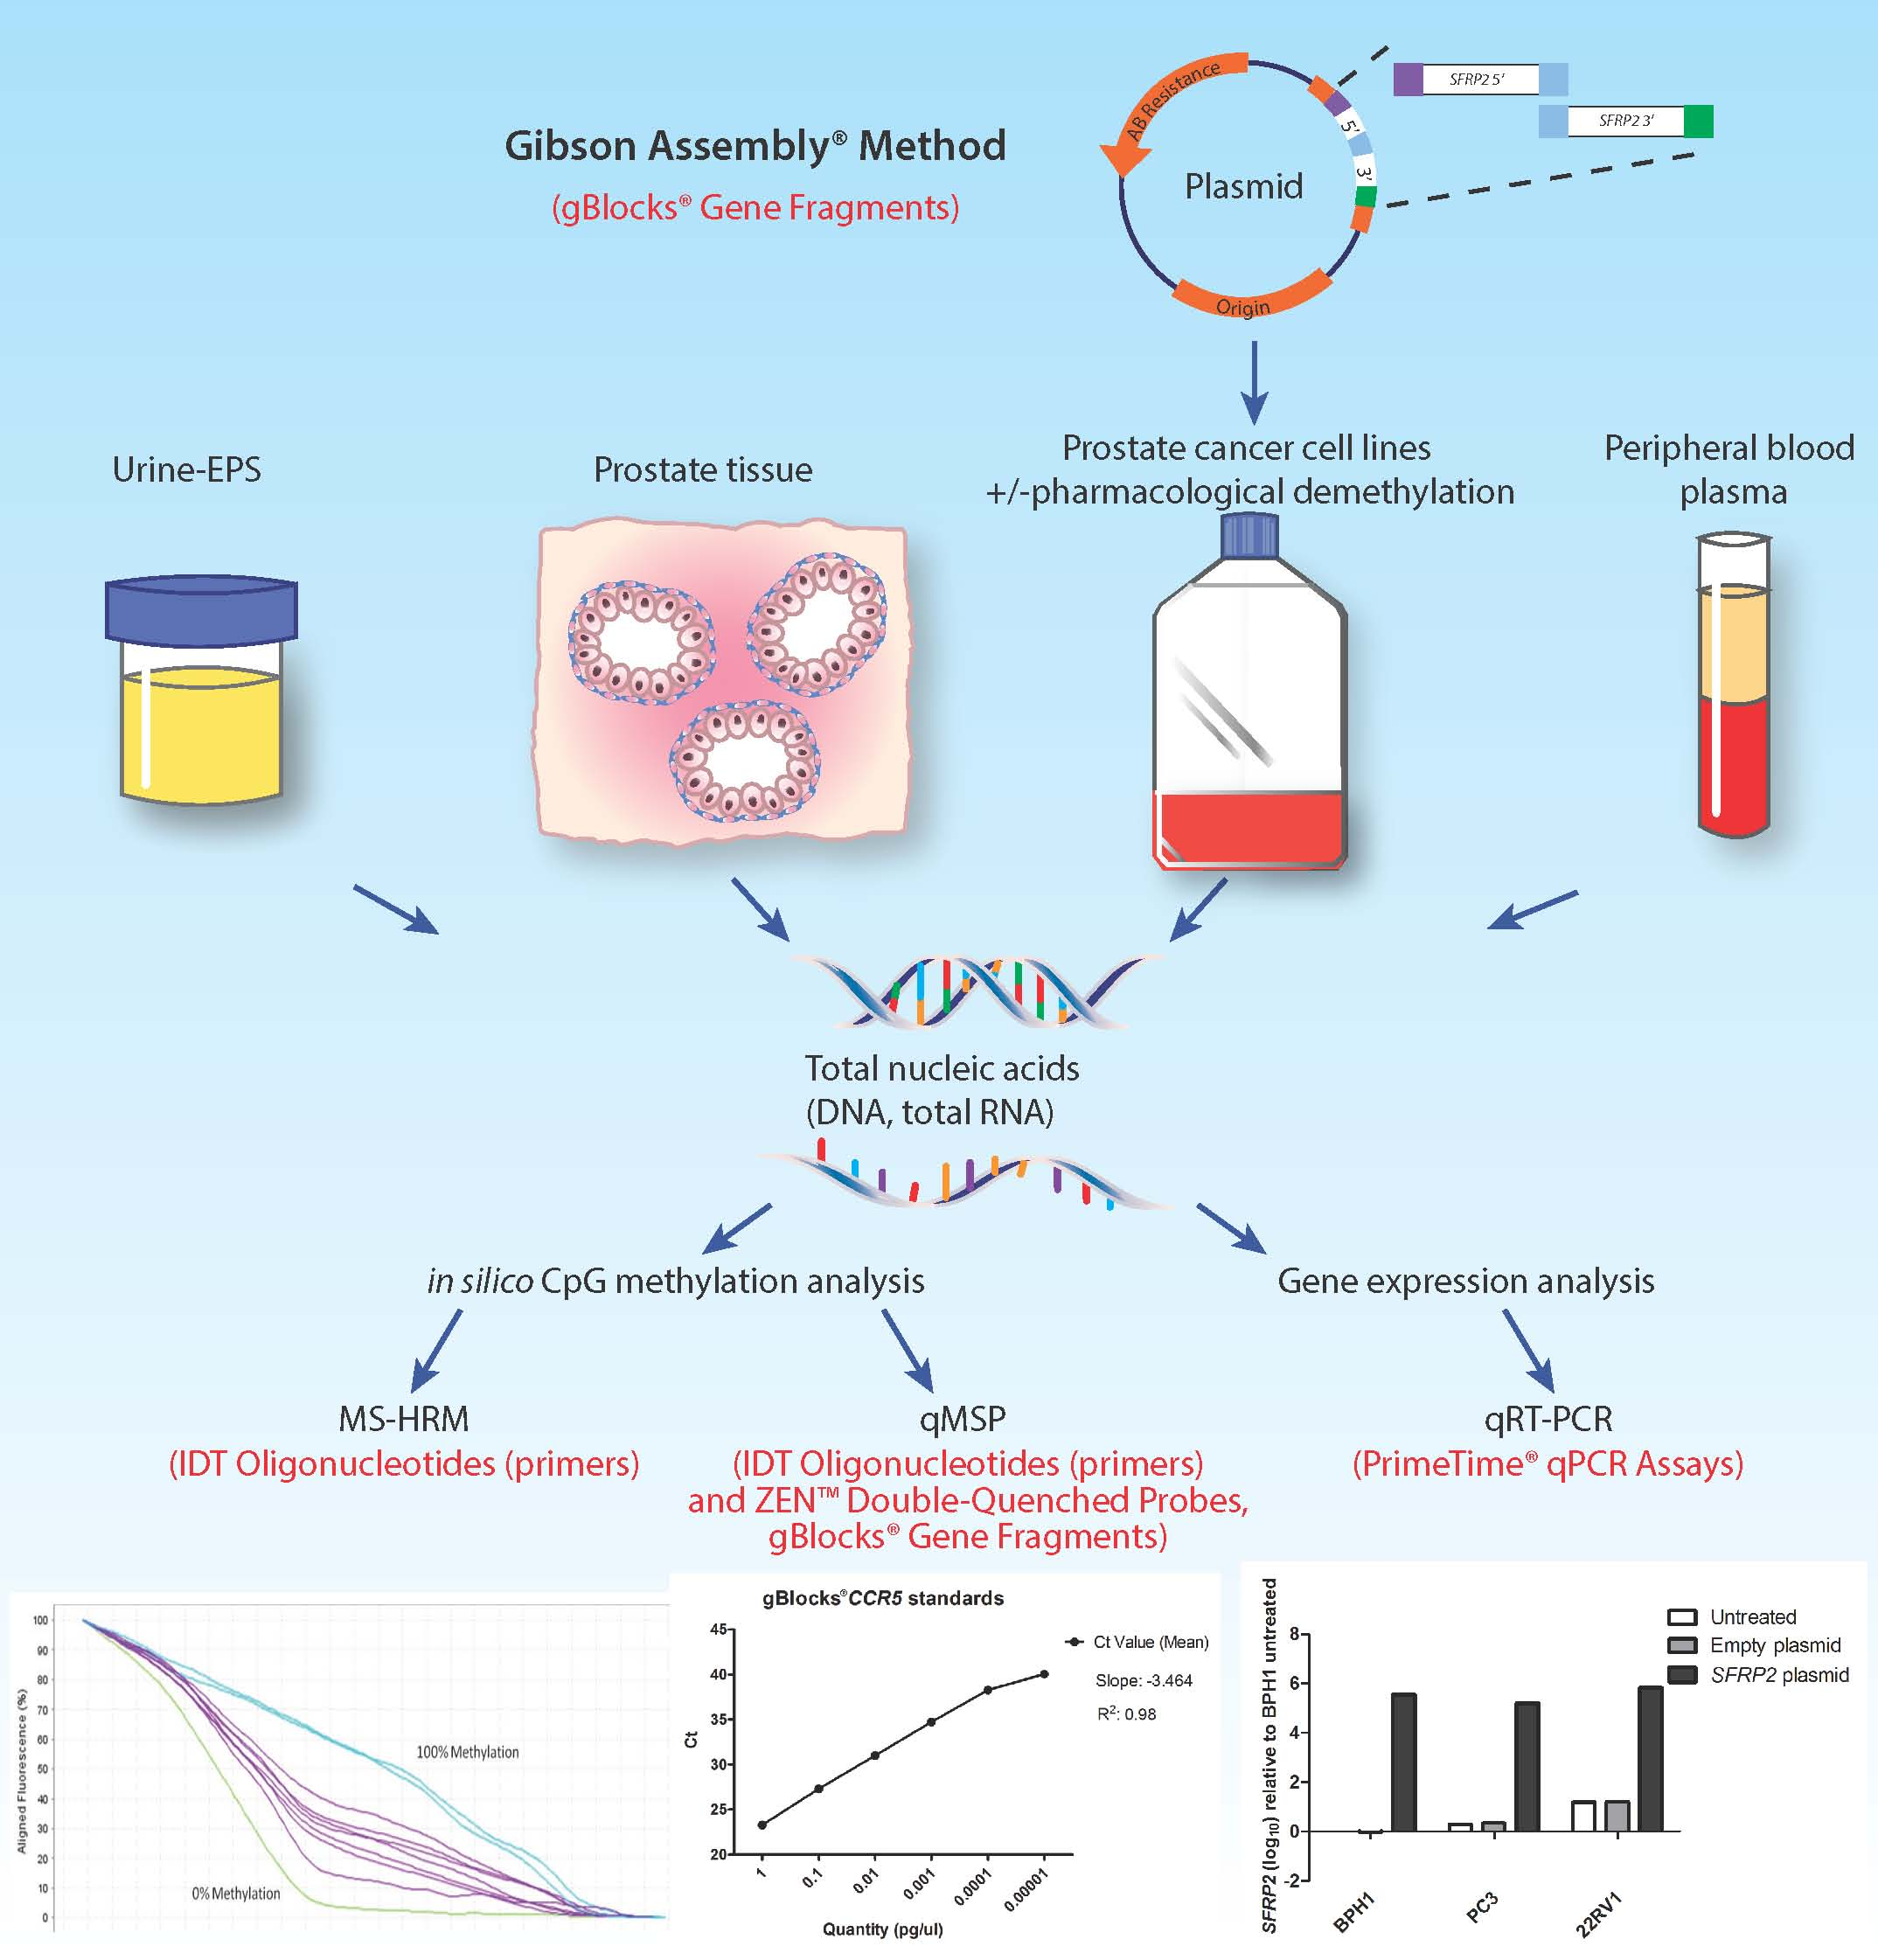 Epigenetic biomarkers for prostate cancer